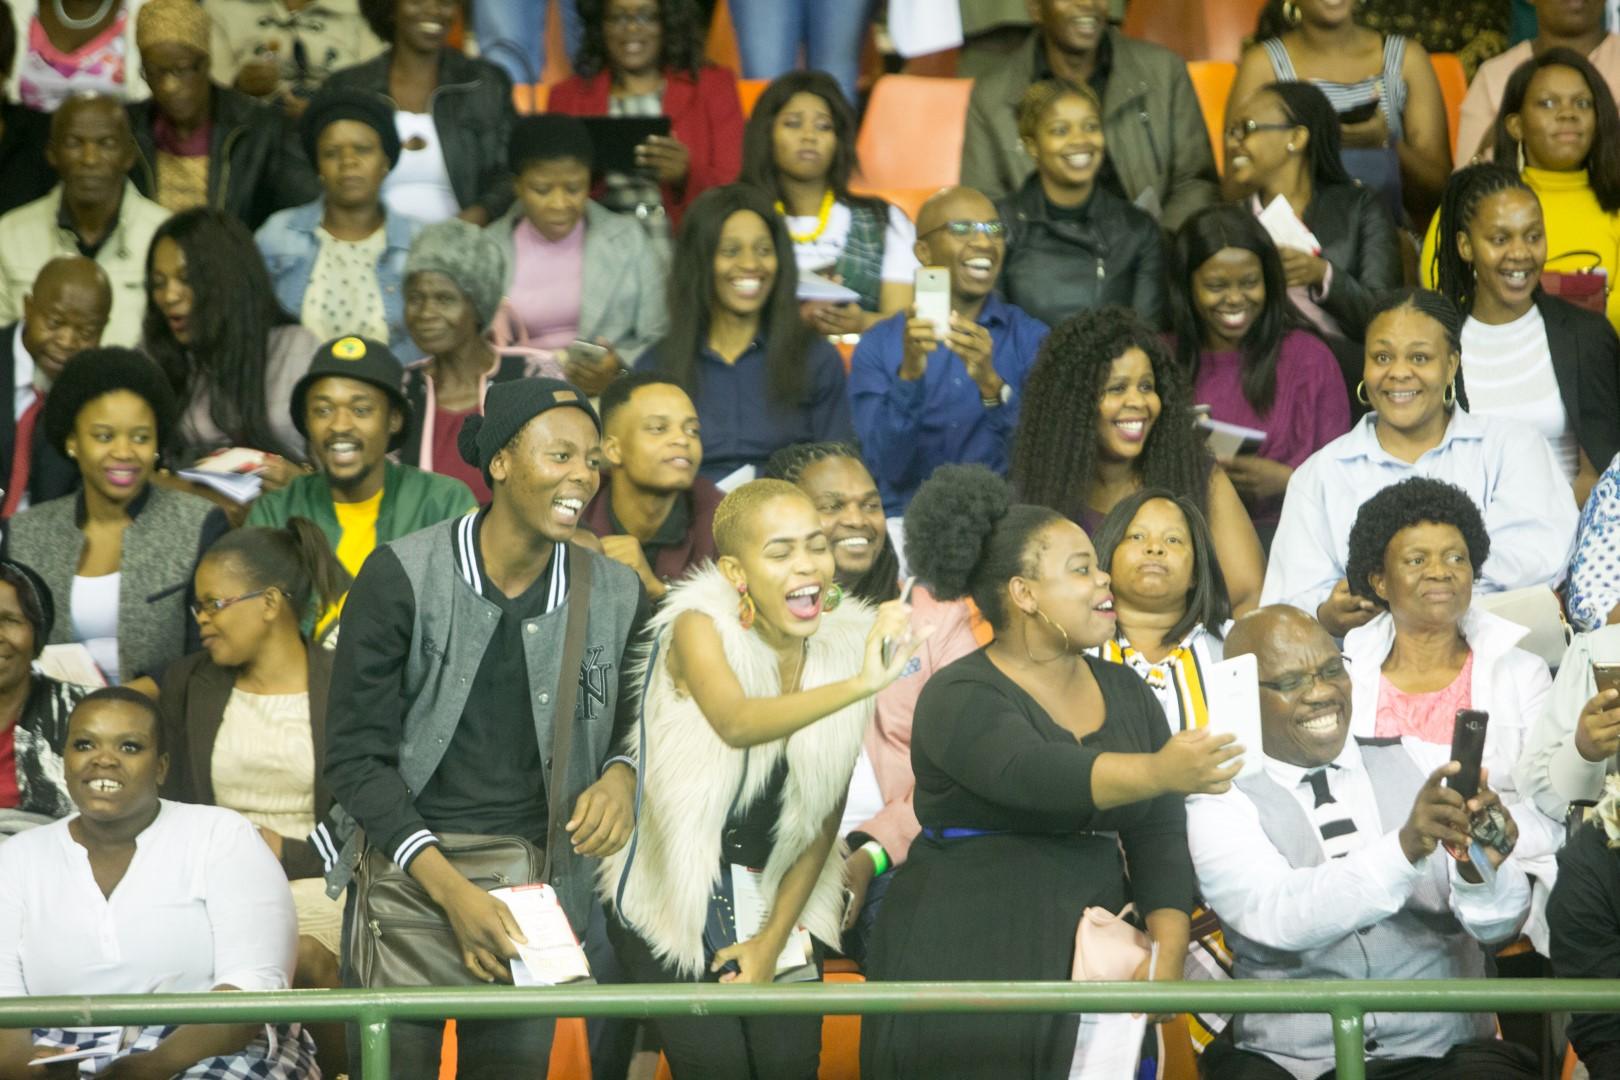 Excited family at the College of Humanities graduation ceremony